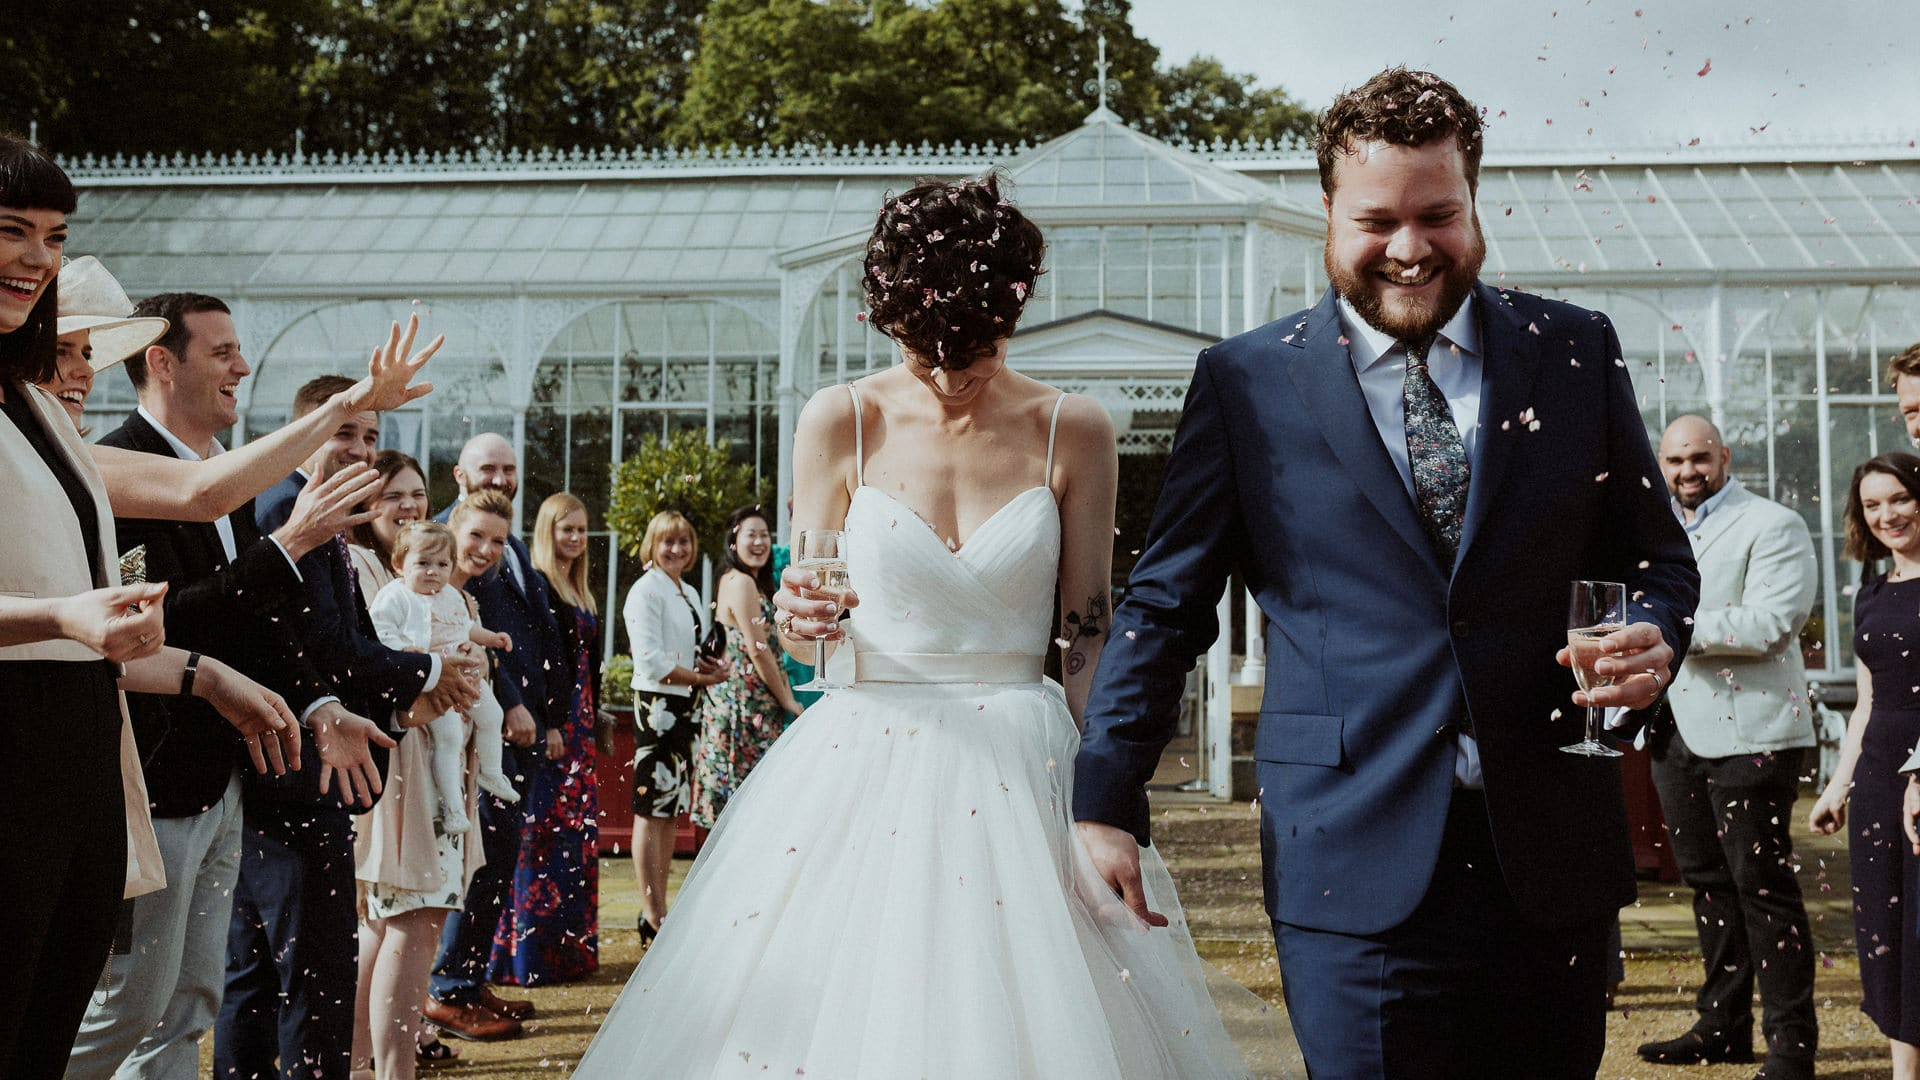 Manchester Wedding Photographer Feminist Wedding Wentworth Castle Gardens 0067